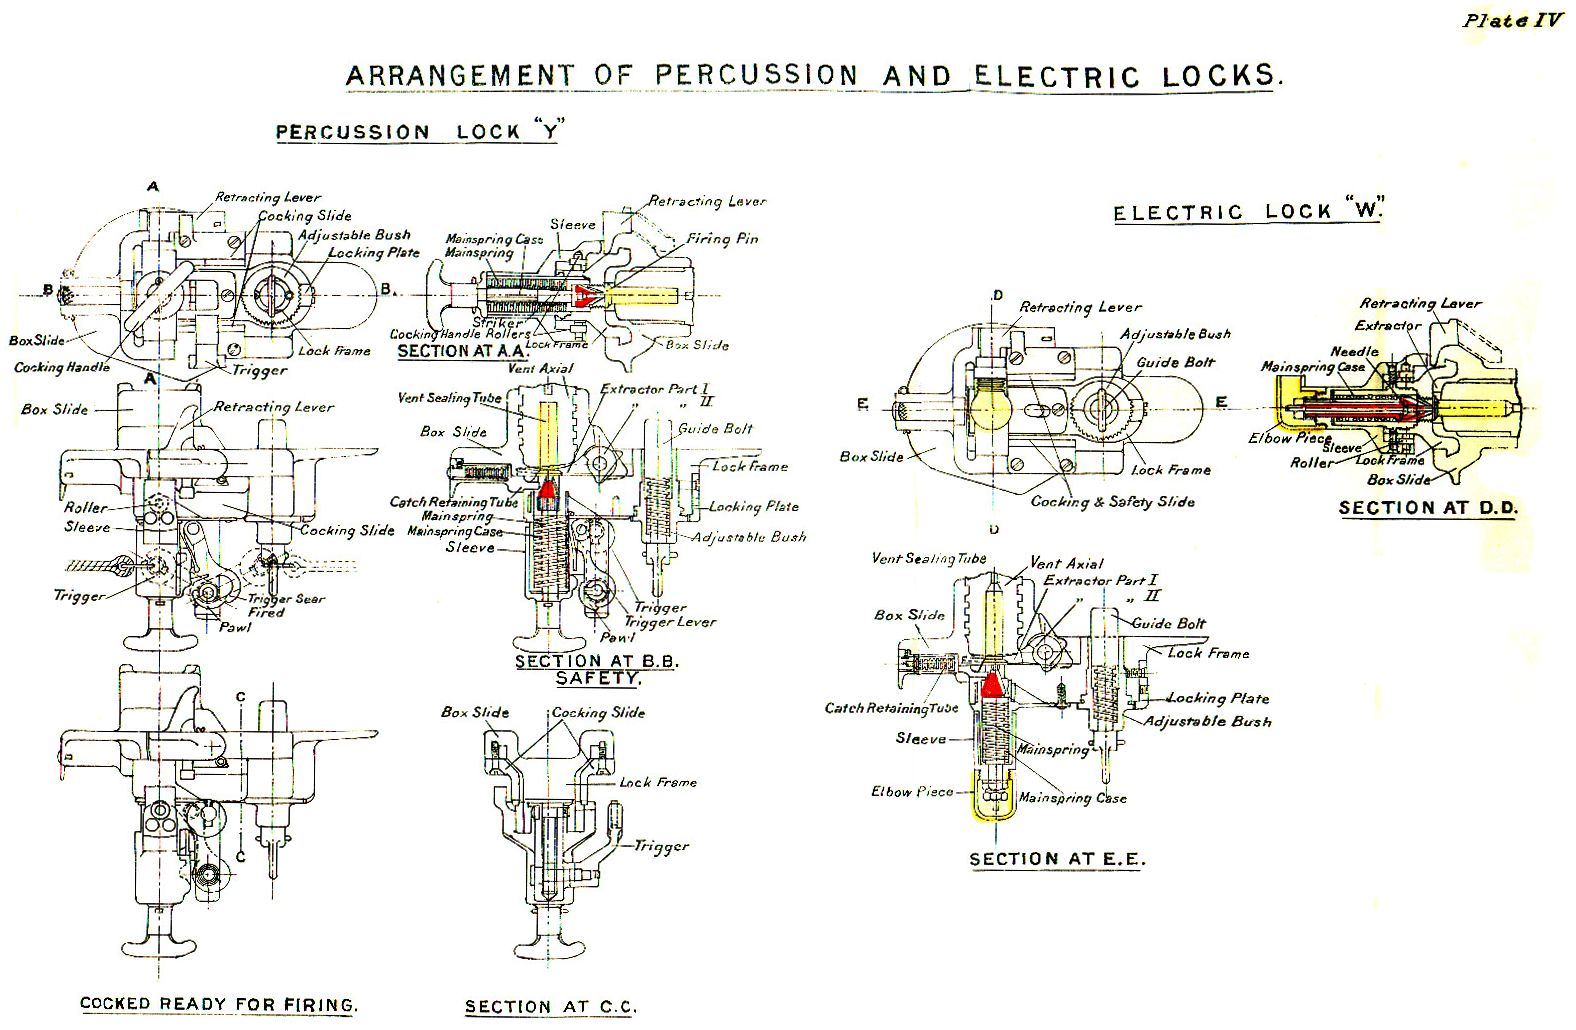 File:BL_4_inch_Mk_VII_Gun_Percussion_&_Electric_Locks_Diagram on Office Work Diagram